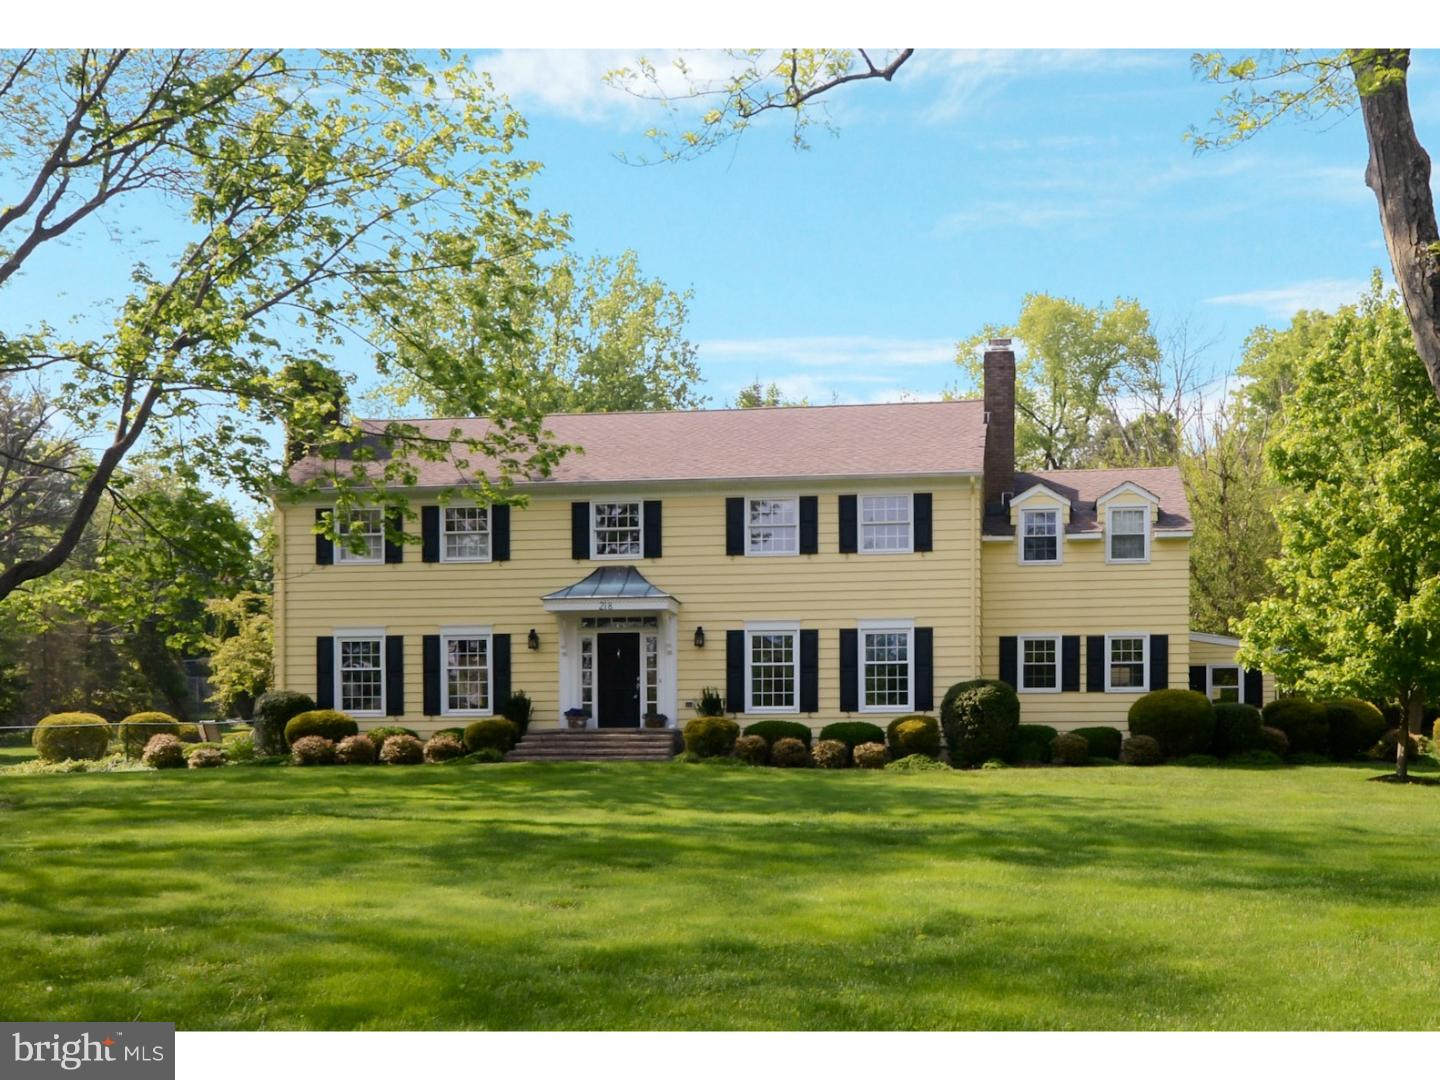 Property for Sale at 218 GALLUP Road Princeton, New Jersey 08540 United States